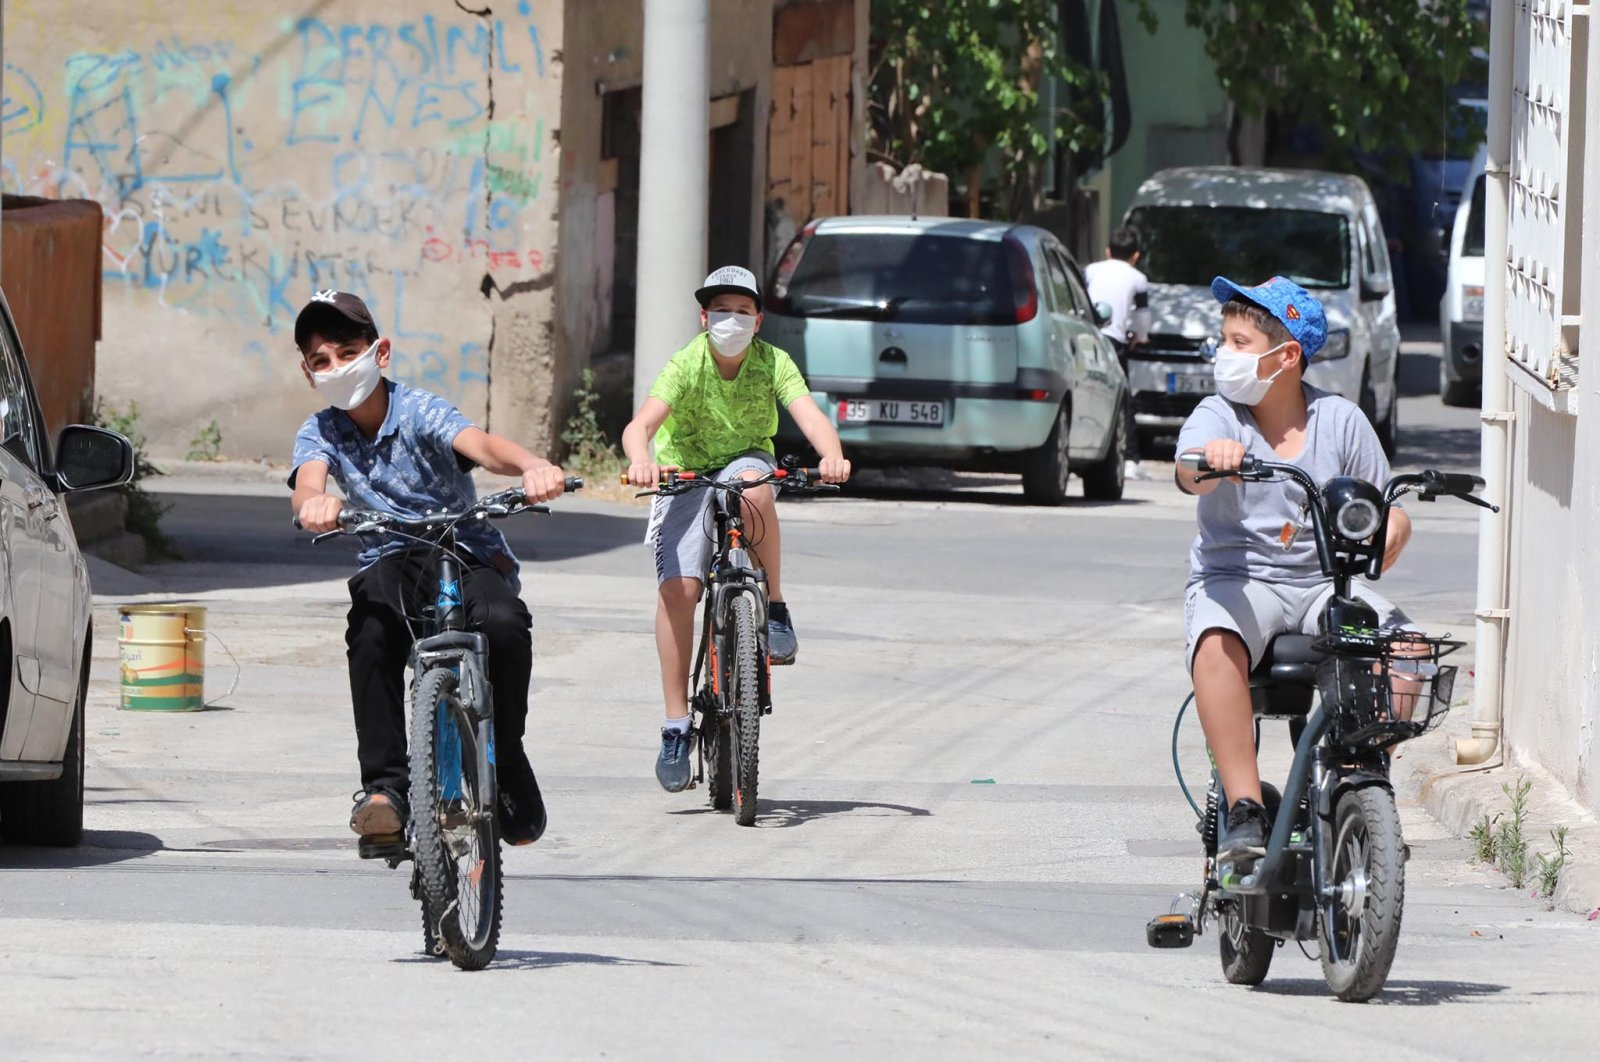 Bicycle dealers say they have never been this busy as cycling was never this popular before. (IHA File Photo)